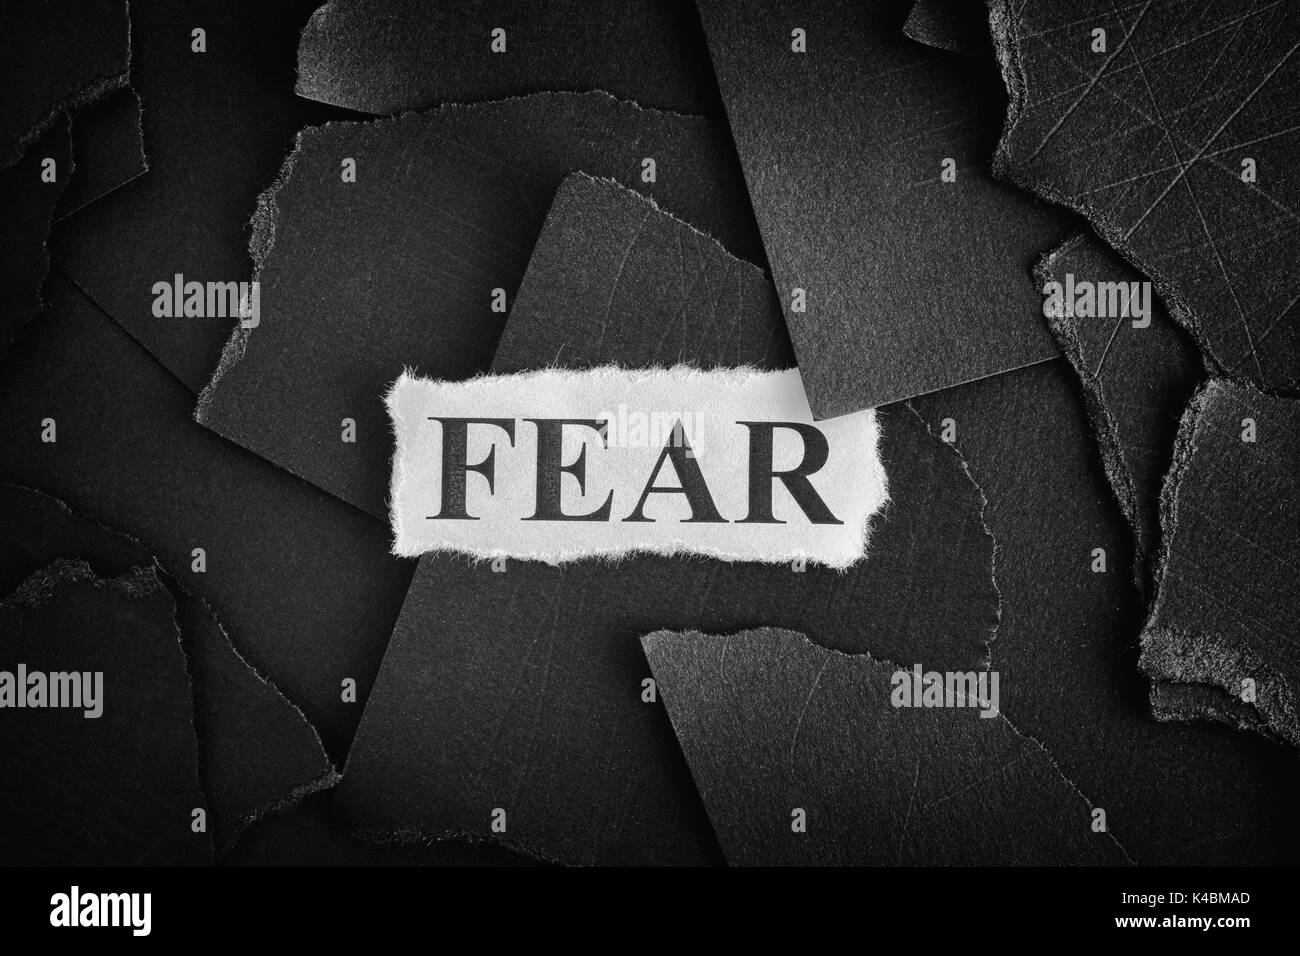 Fear. Torn pieces of black paper and word Fear. Concept Image. Black and White. Closeup. - Stock Image